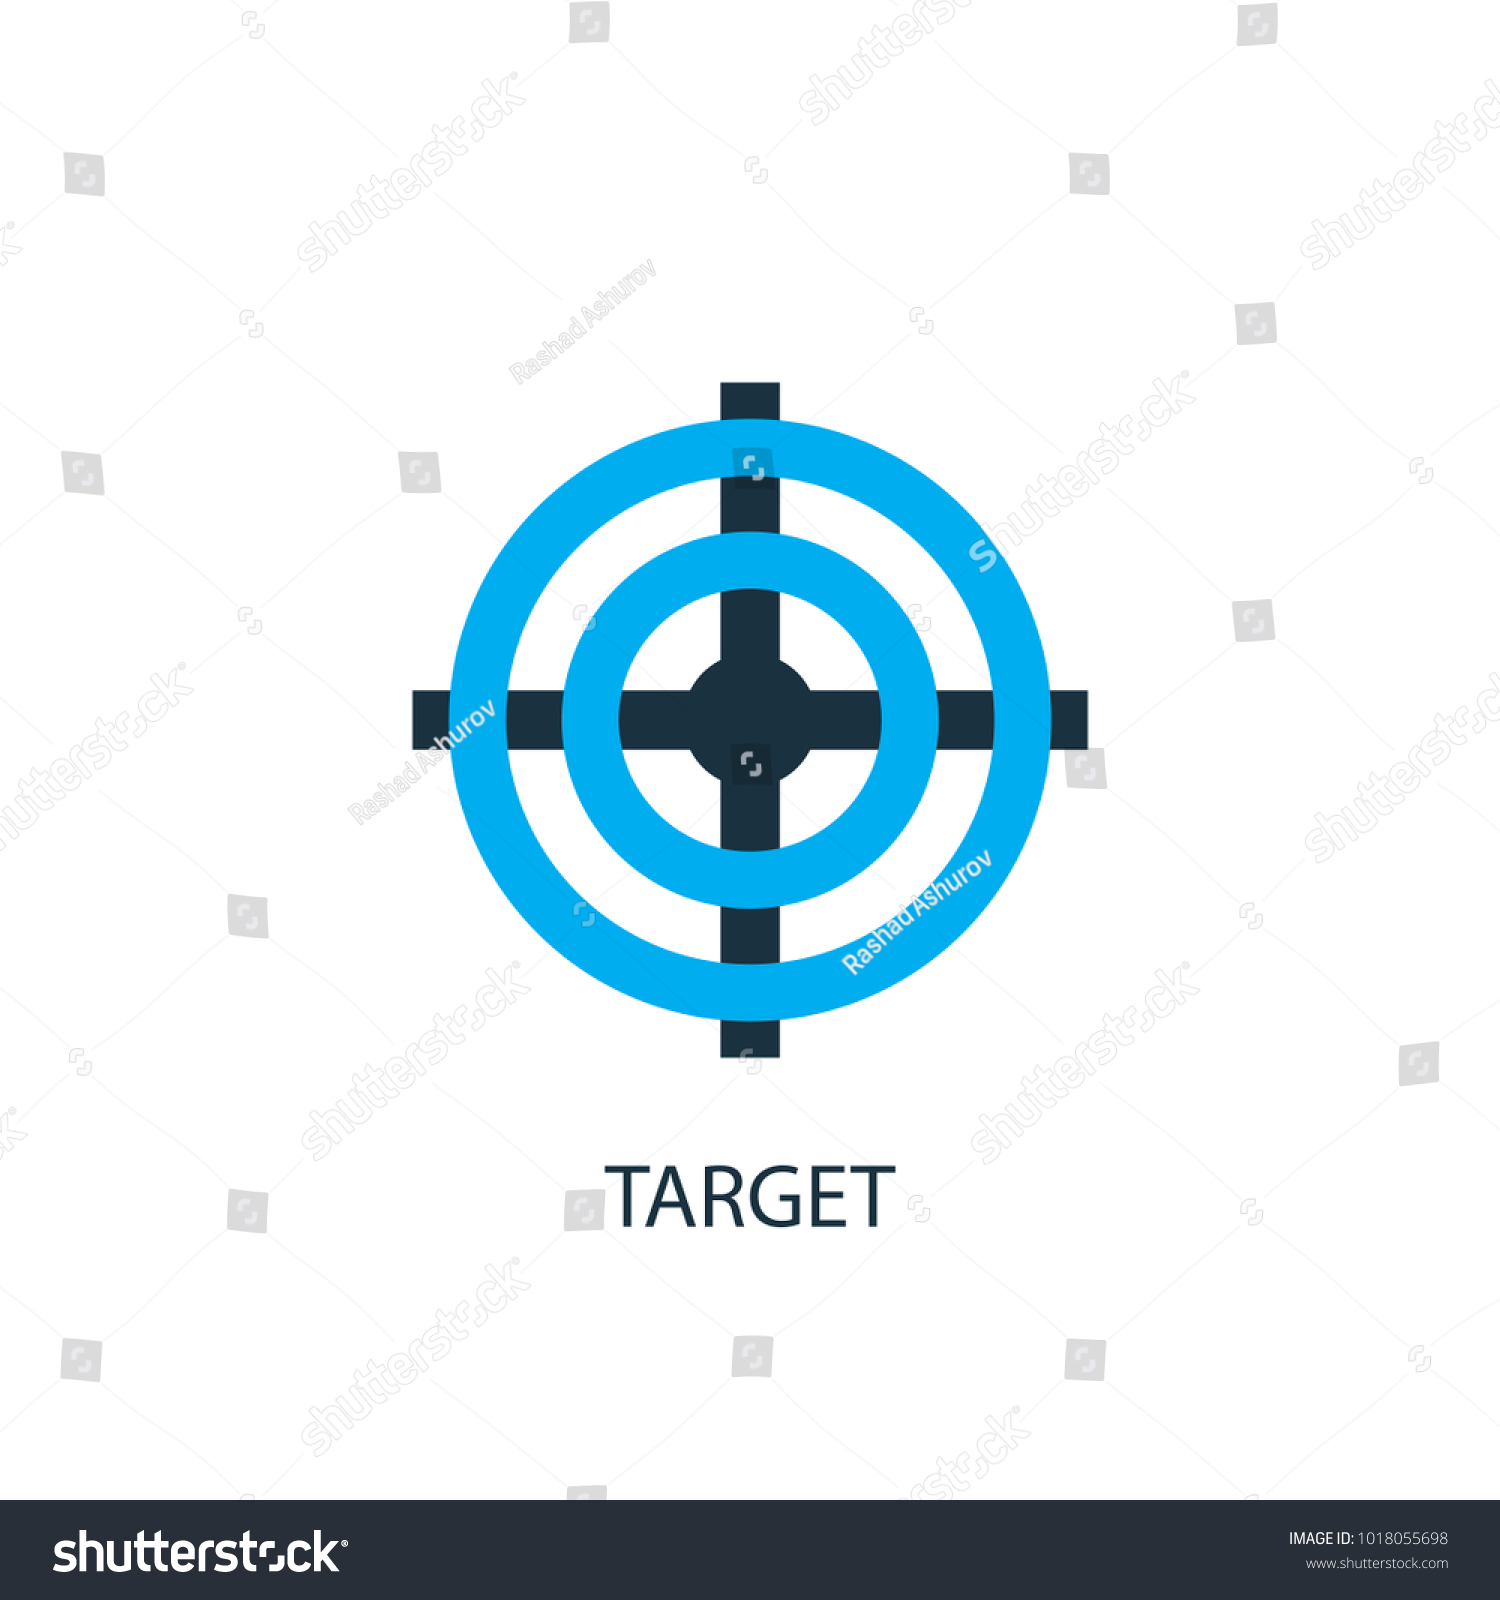 Target icon logo element illustration target stock vector target icon logo element illustration target symbol design from 2 colored collection simple buycottarizona Image collections